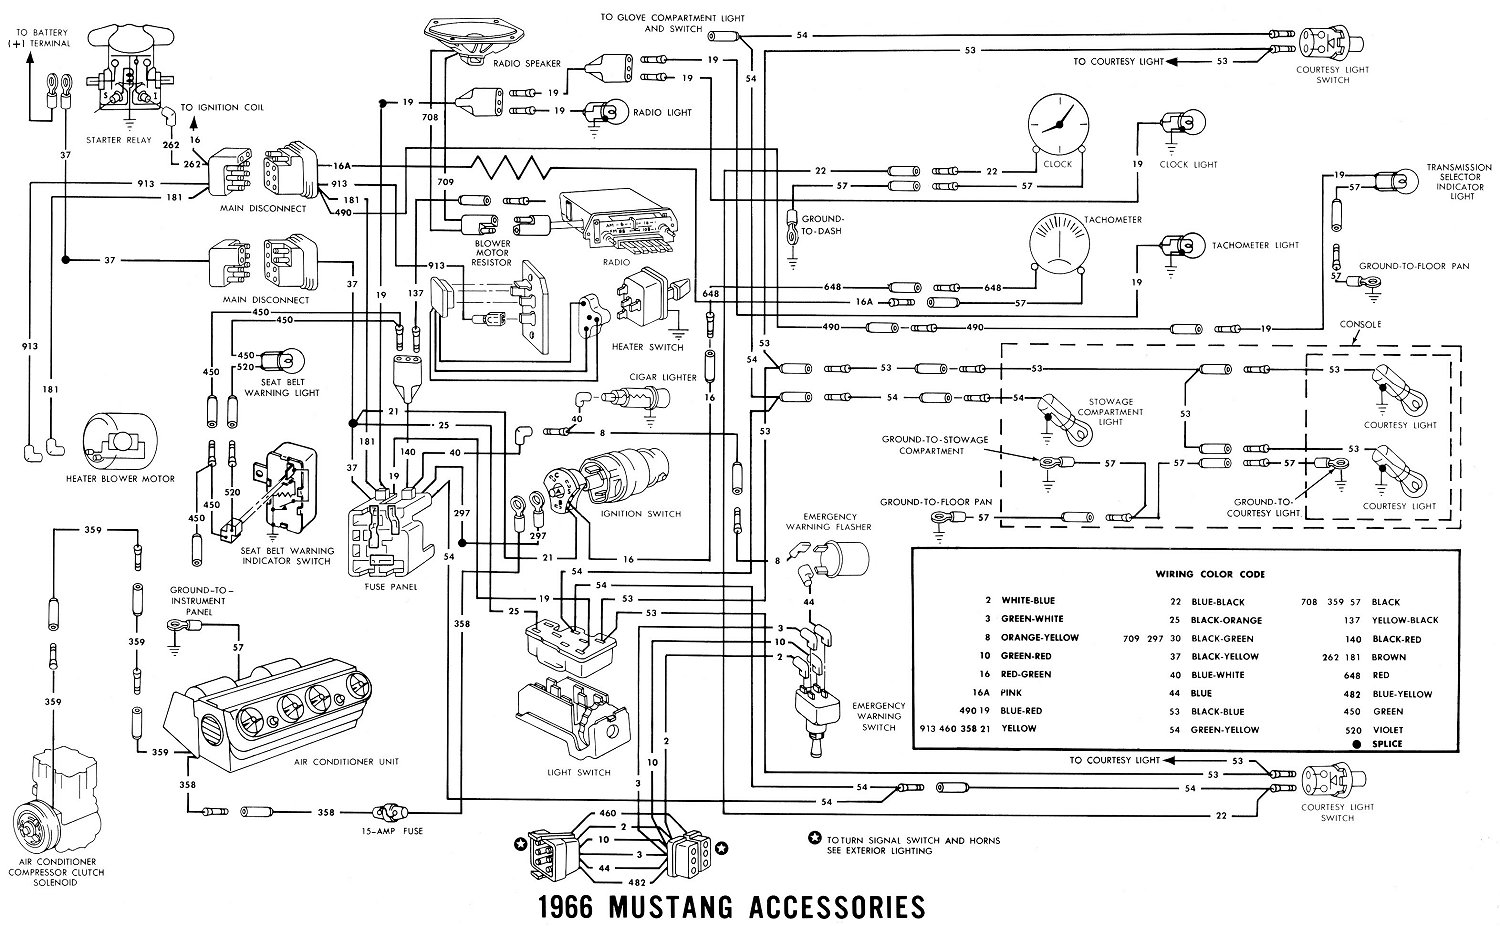 1966 mustang ignition wiring diagram lelu's 66 mustang: april 2011 1966 mustang lighting wiring diagram